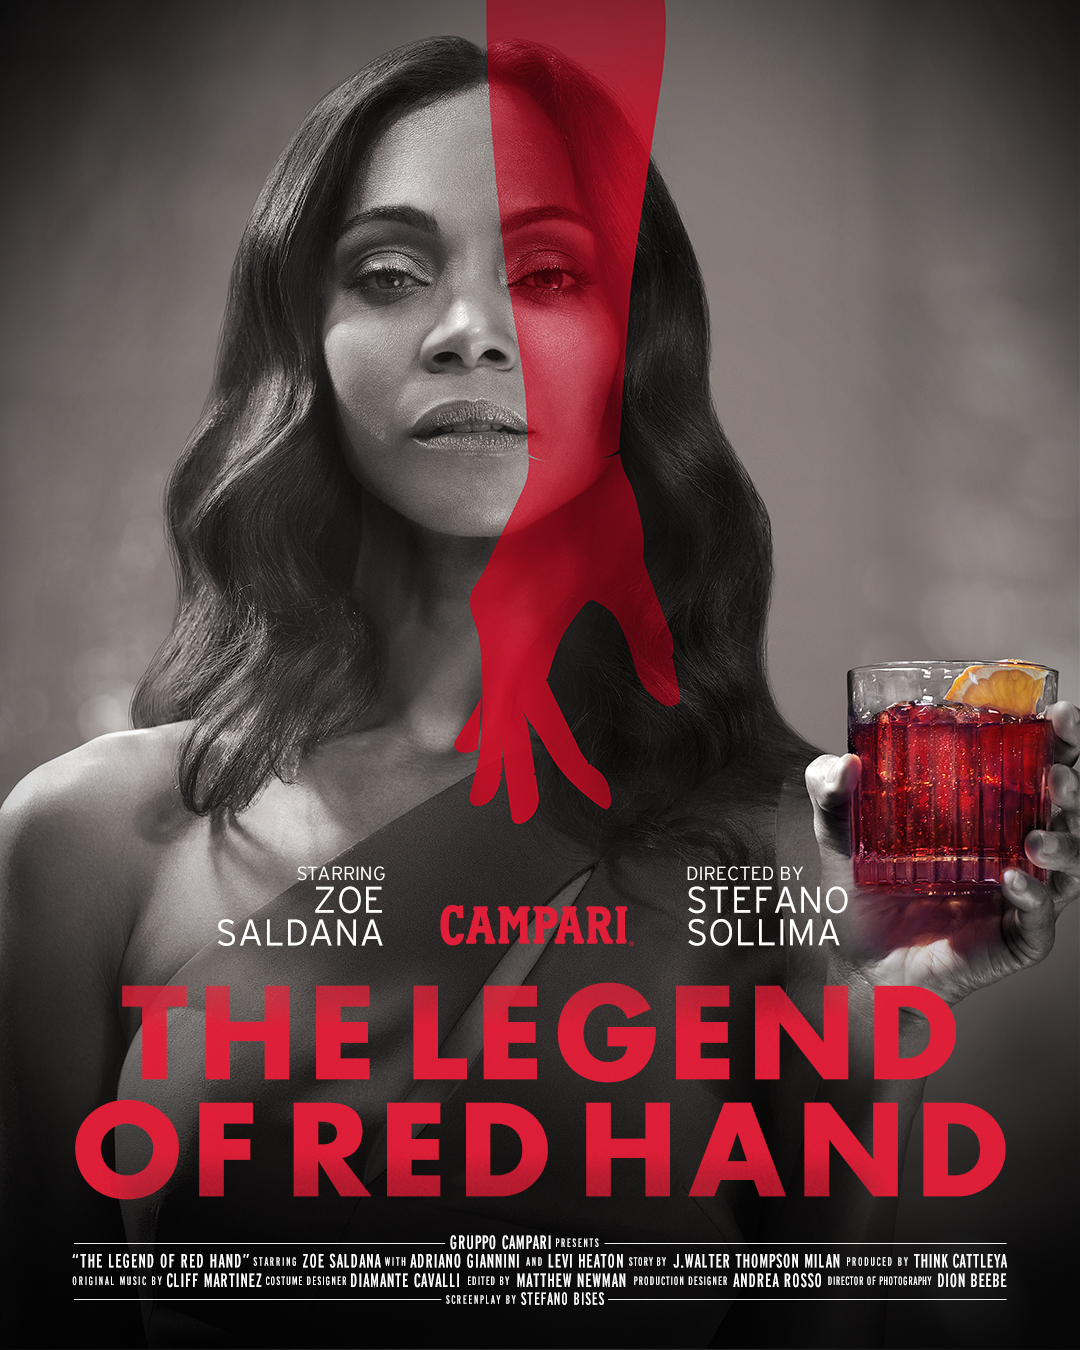 Zoe Saldana - The Legend of Red Hand